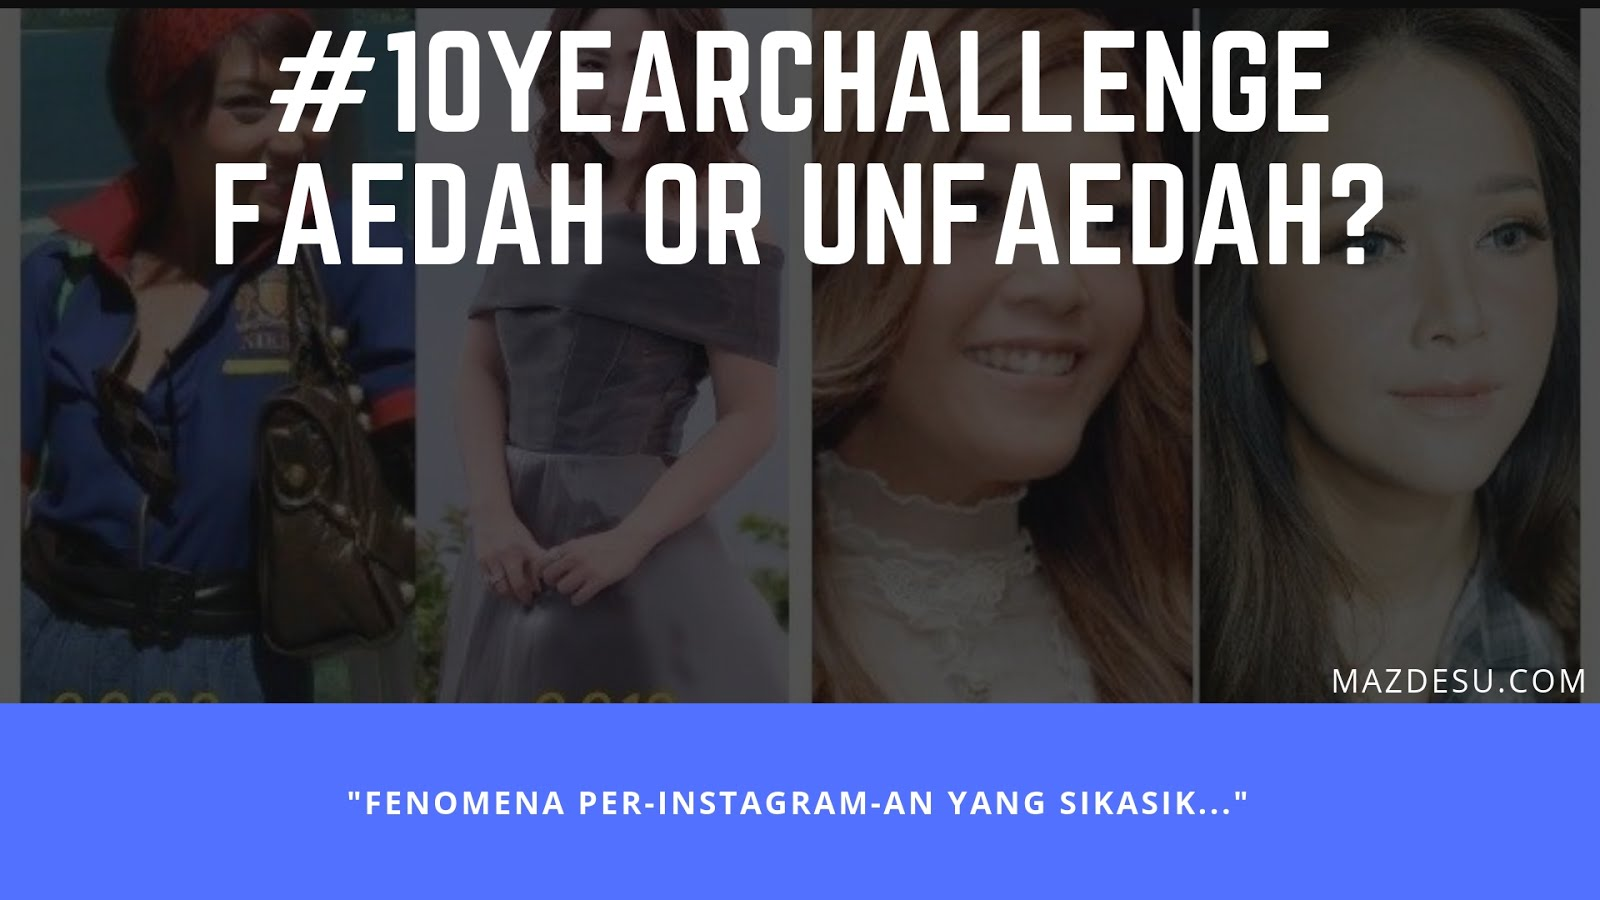 #10YearChallenge, Faedah or Unfaedah?